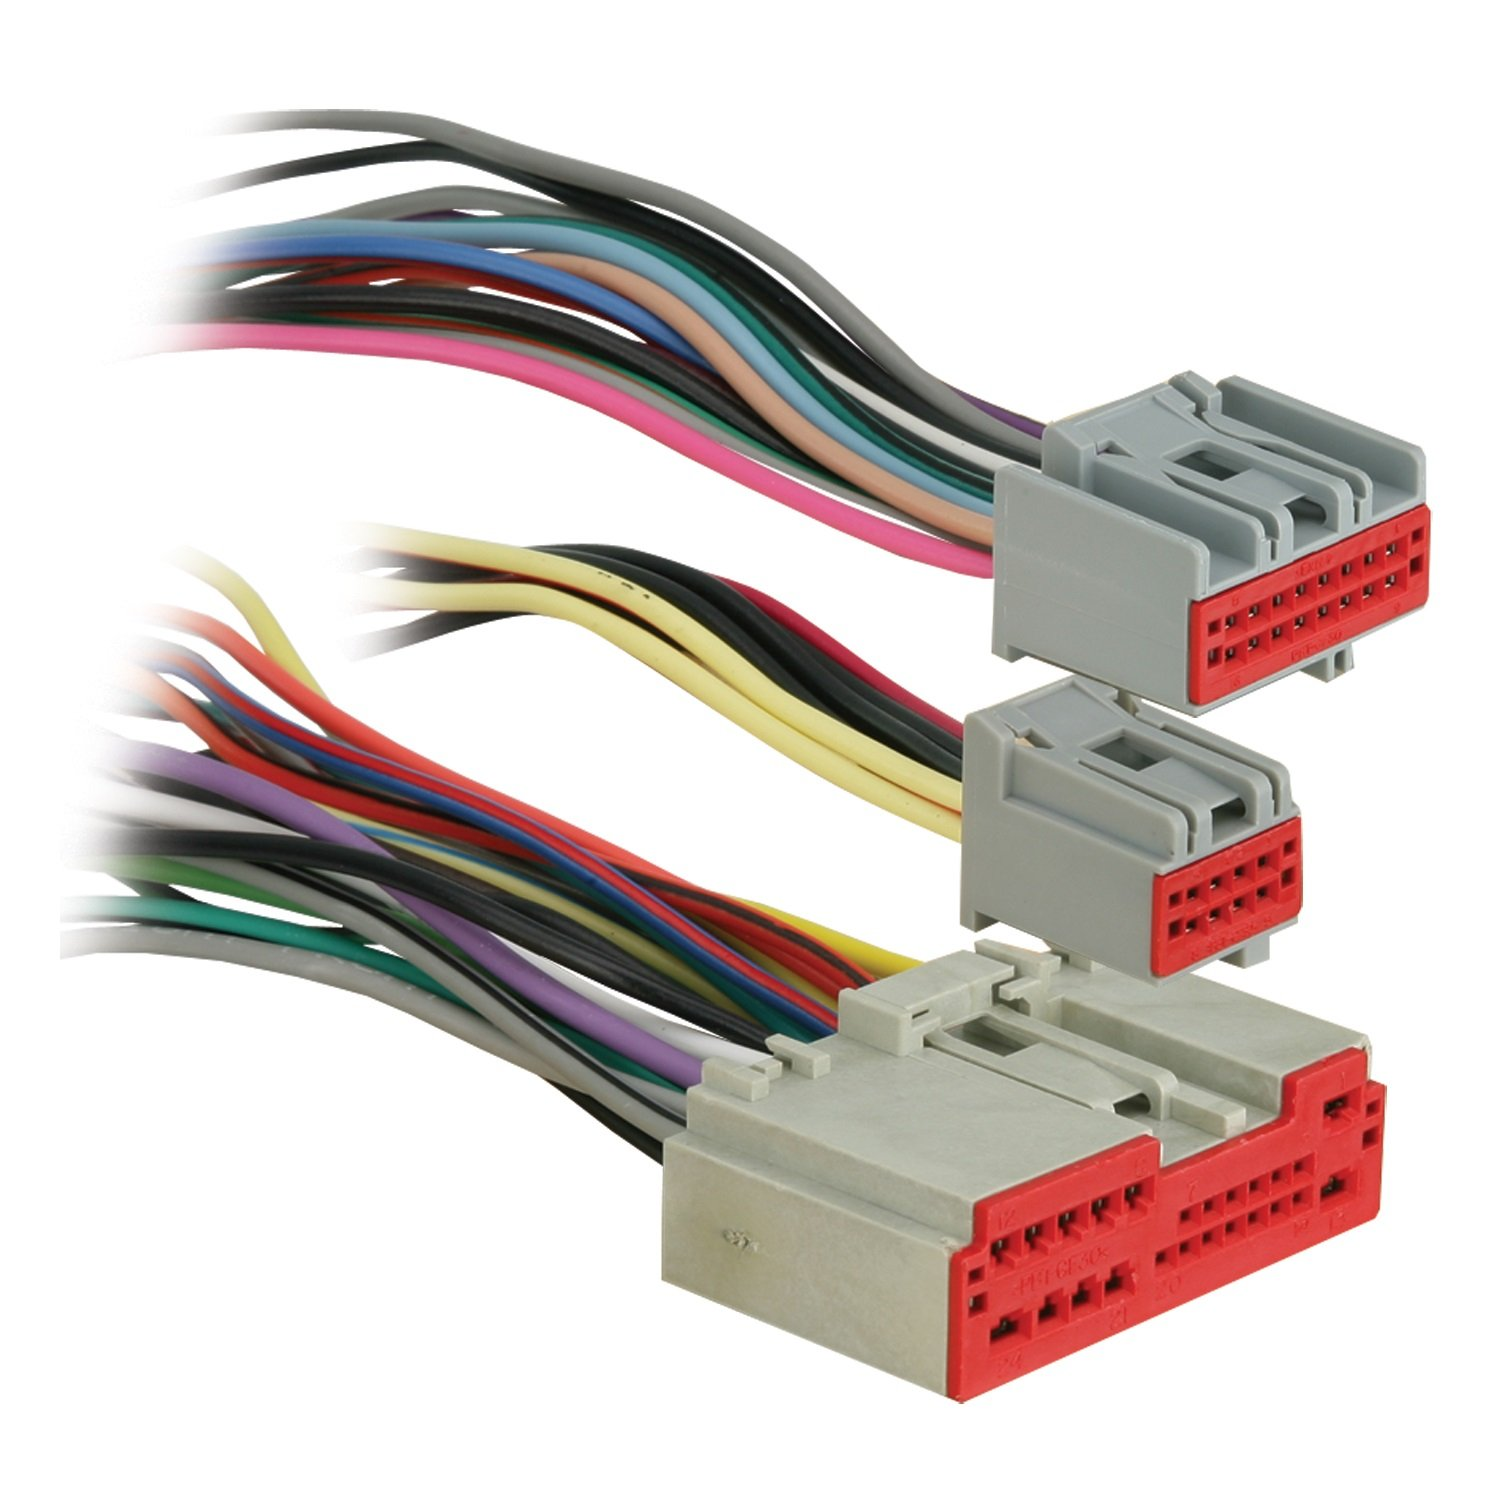 71qqcILSKiL._SL1500_ amazon com metra reverse wiring harness 71 5520 1 for select 2003 metra reverse wiring harness 71-1721 at cos-gaming.co